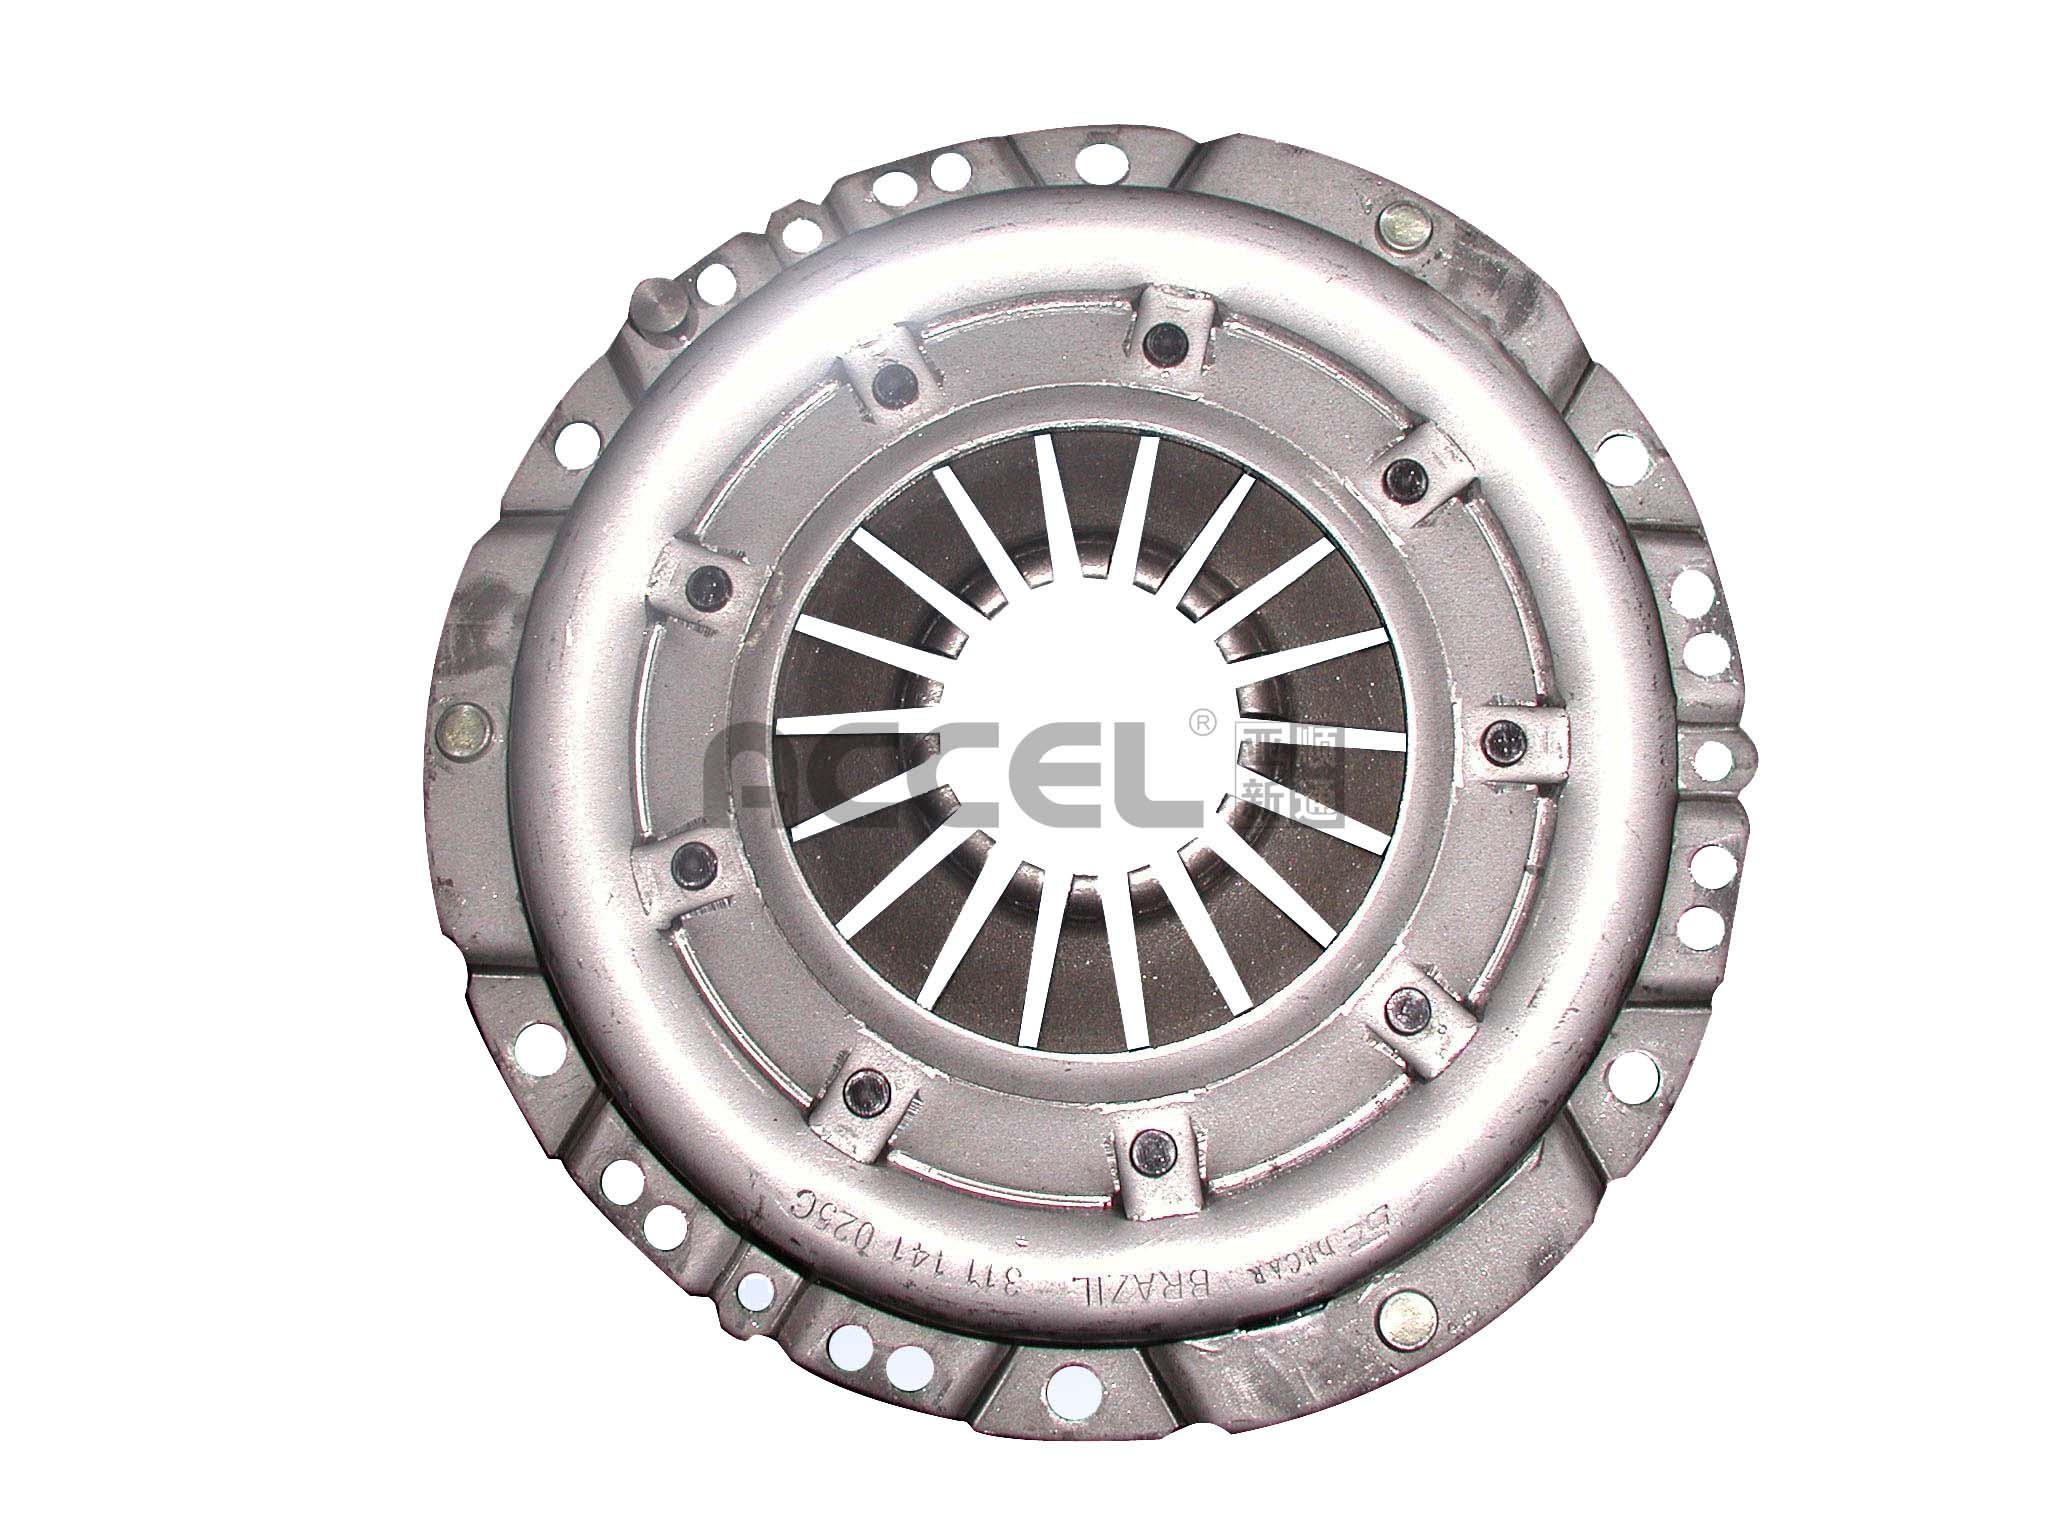 Clutch Cover/OE:120 0001 10/200*127*218/STC-052/OTHERS/LY104/021 141 025C